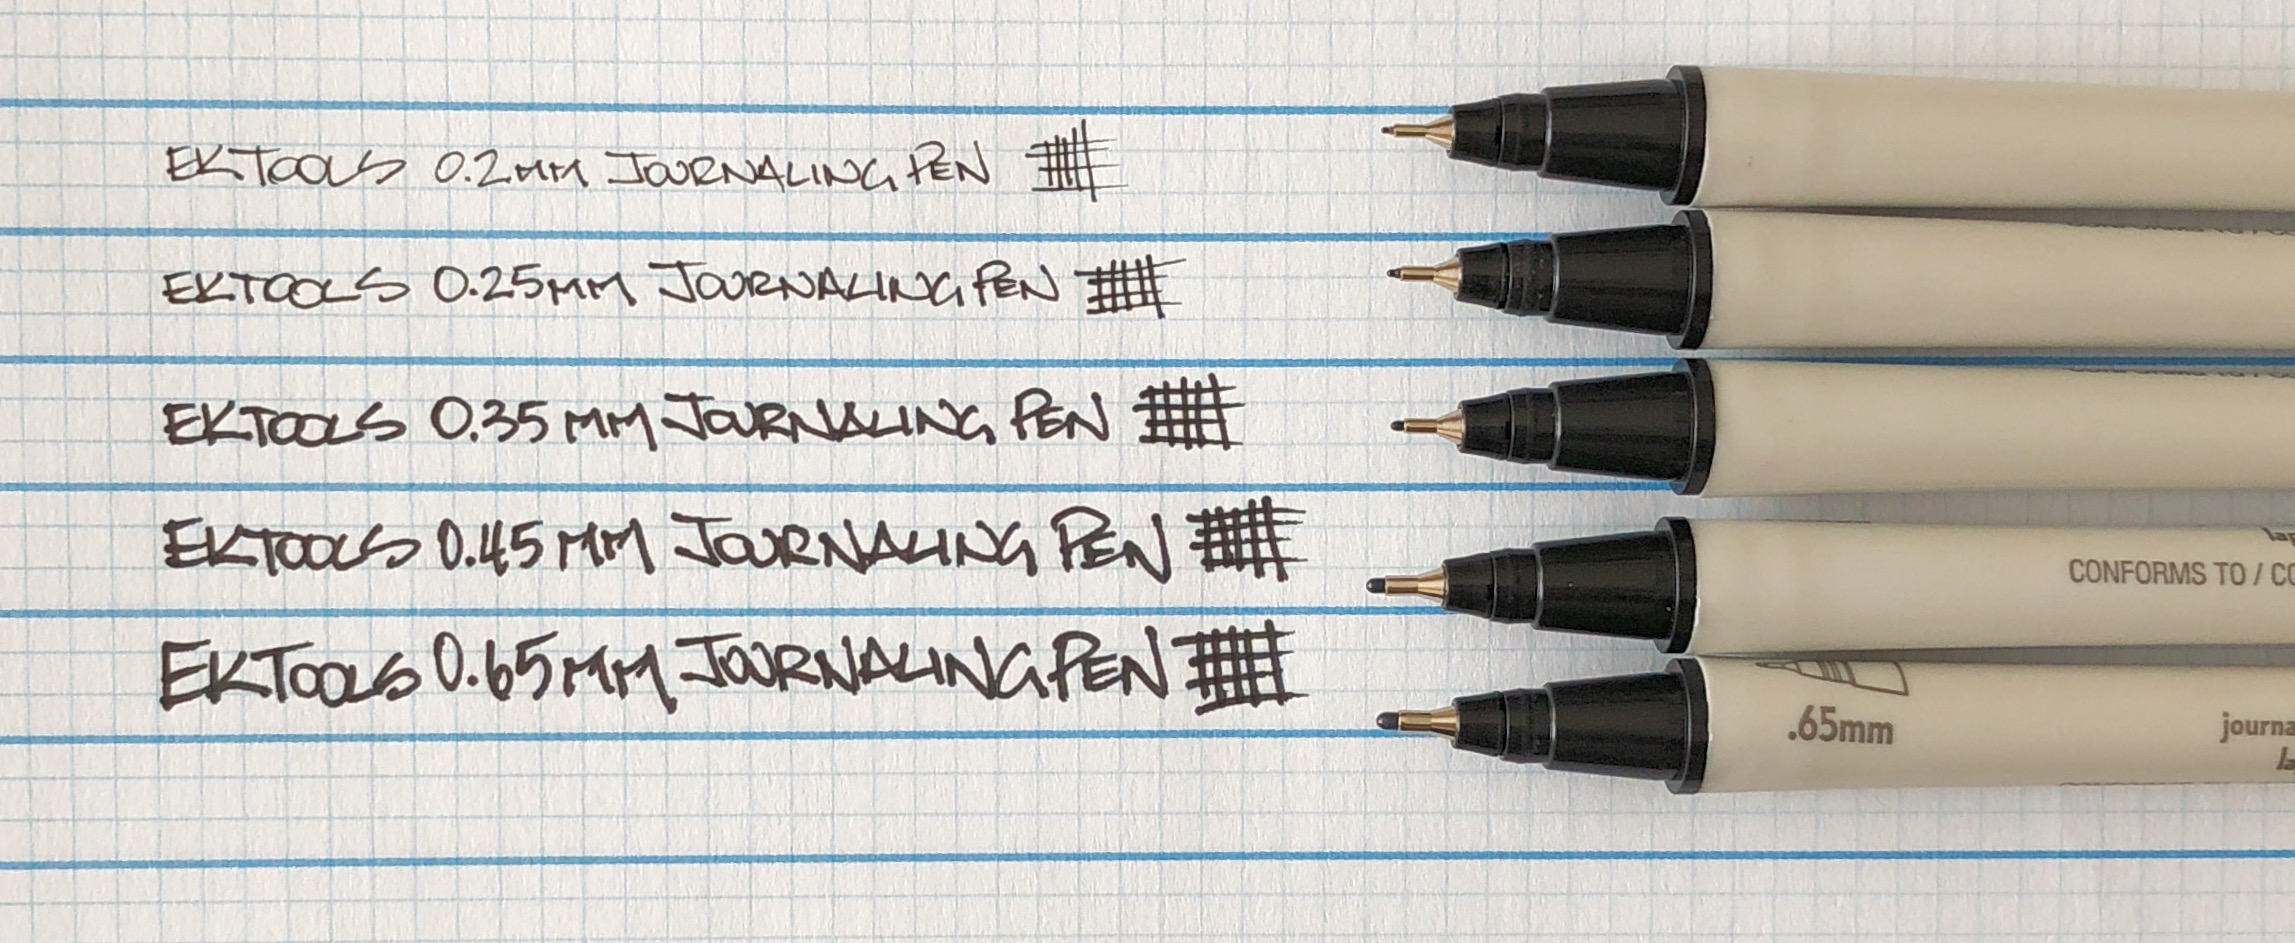 EK Tools Journaling Pen Tip Sizes